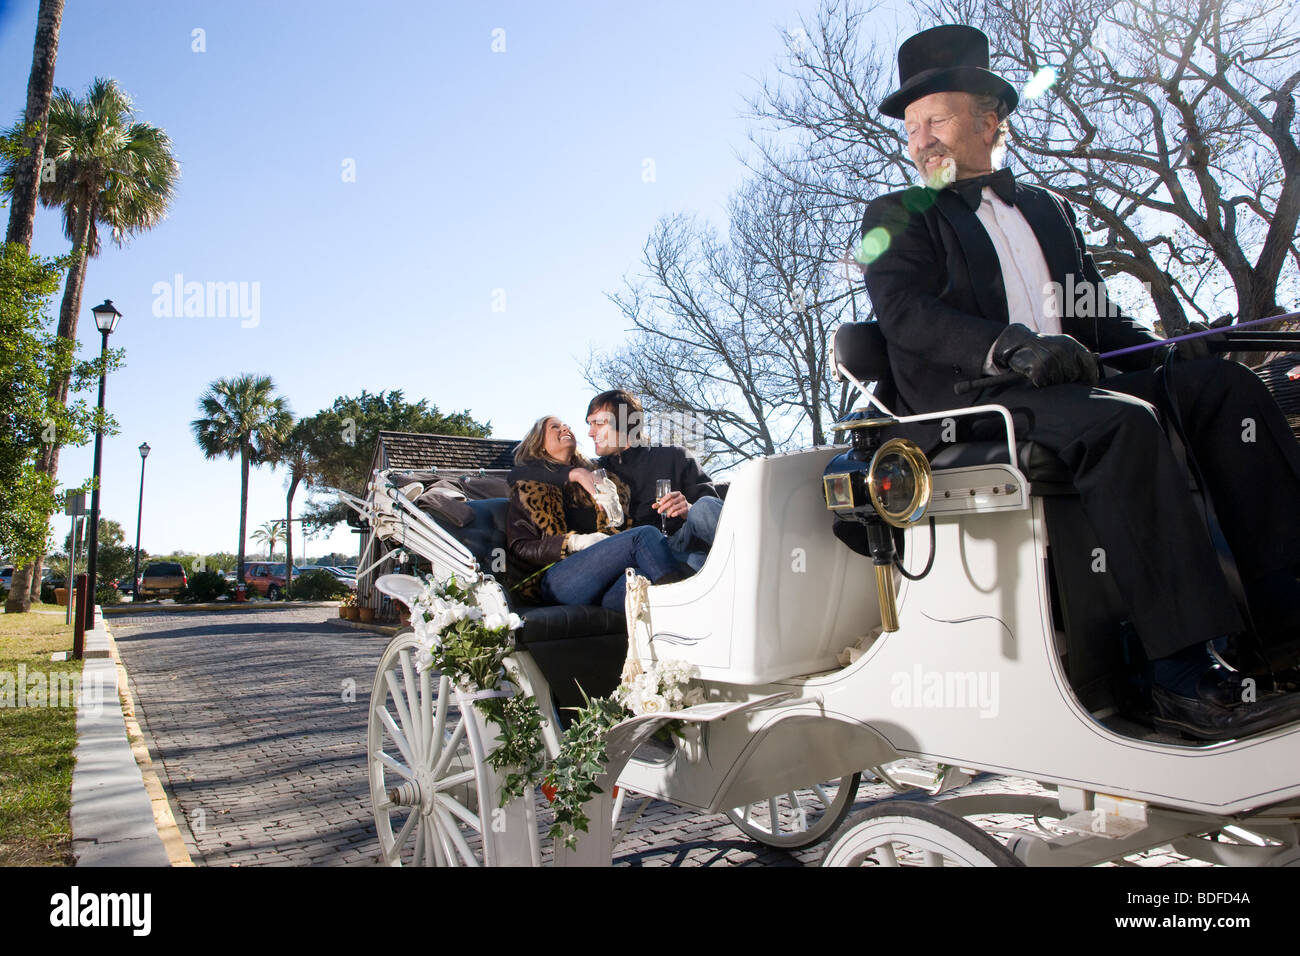 Young couple riding in horse-drawn carriage Stock Photo, Royalty Free Image: 25540490 - Alamy